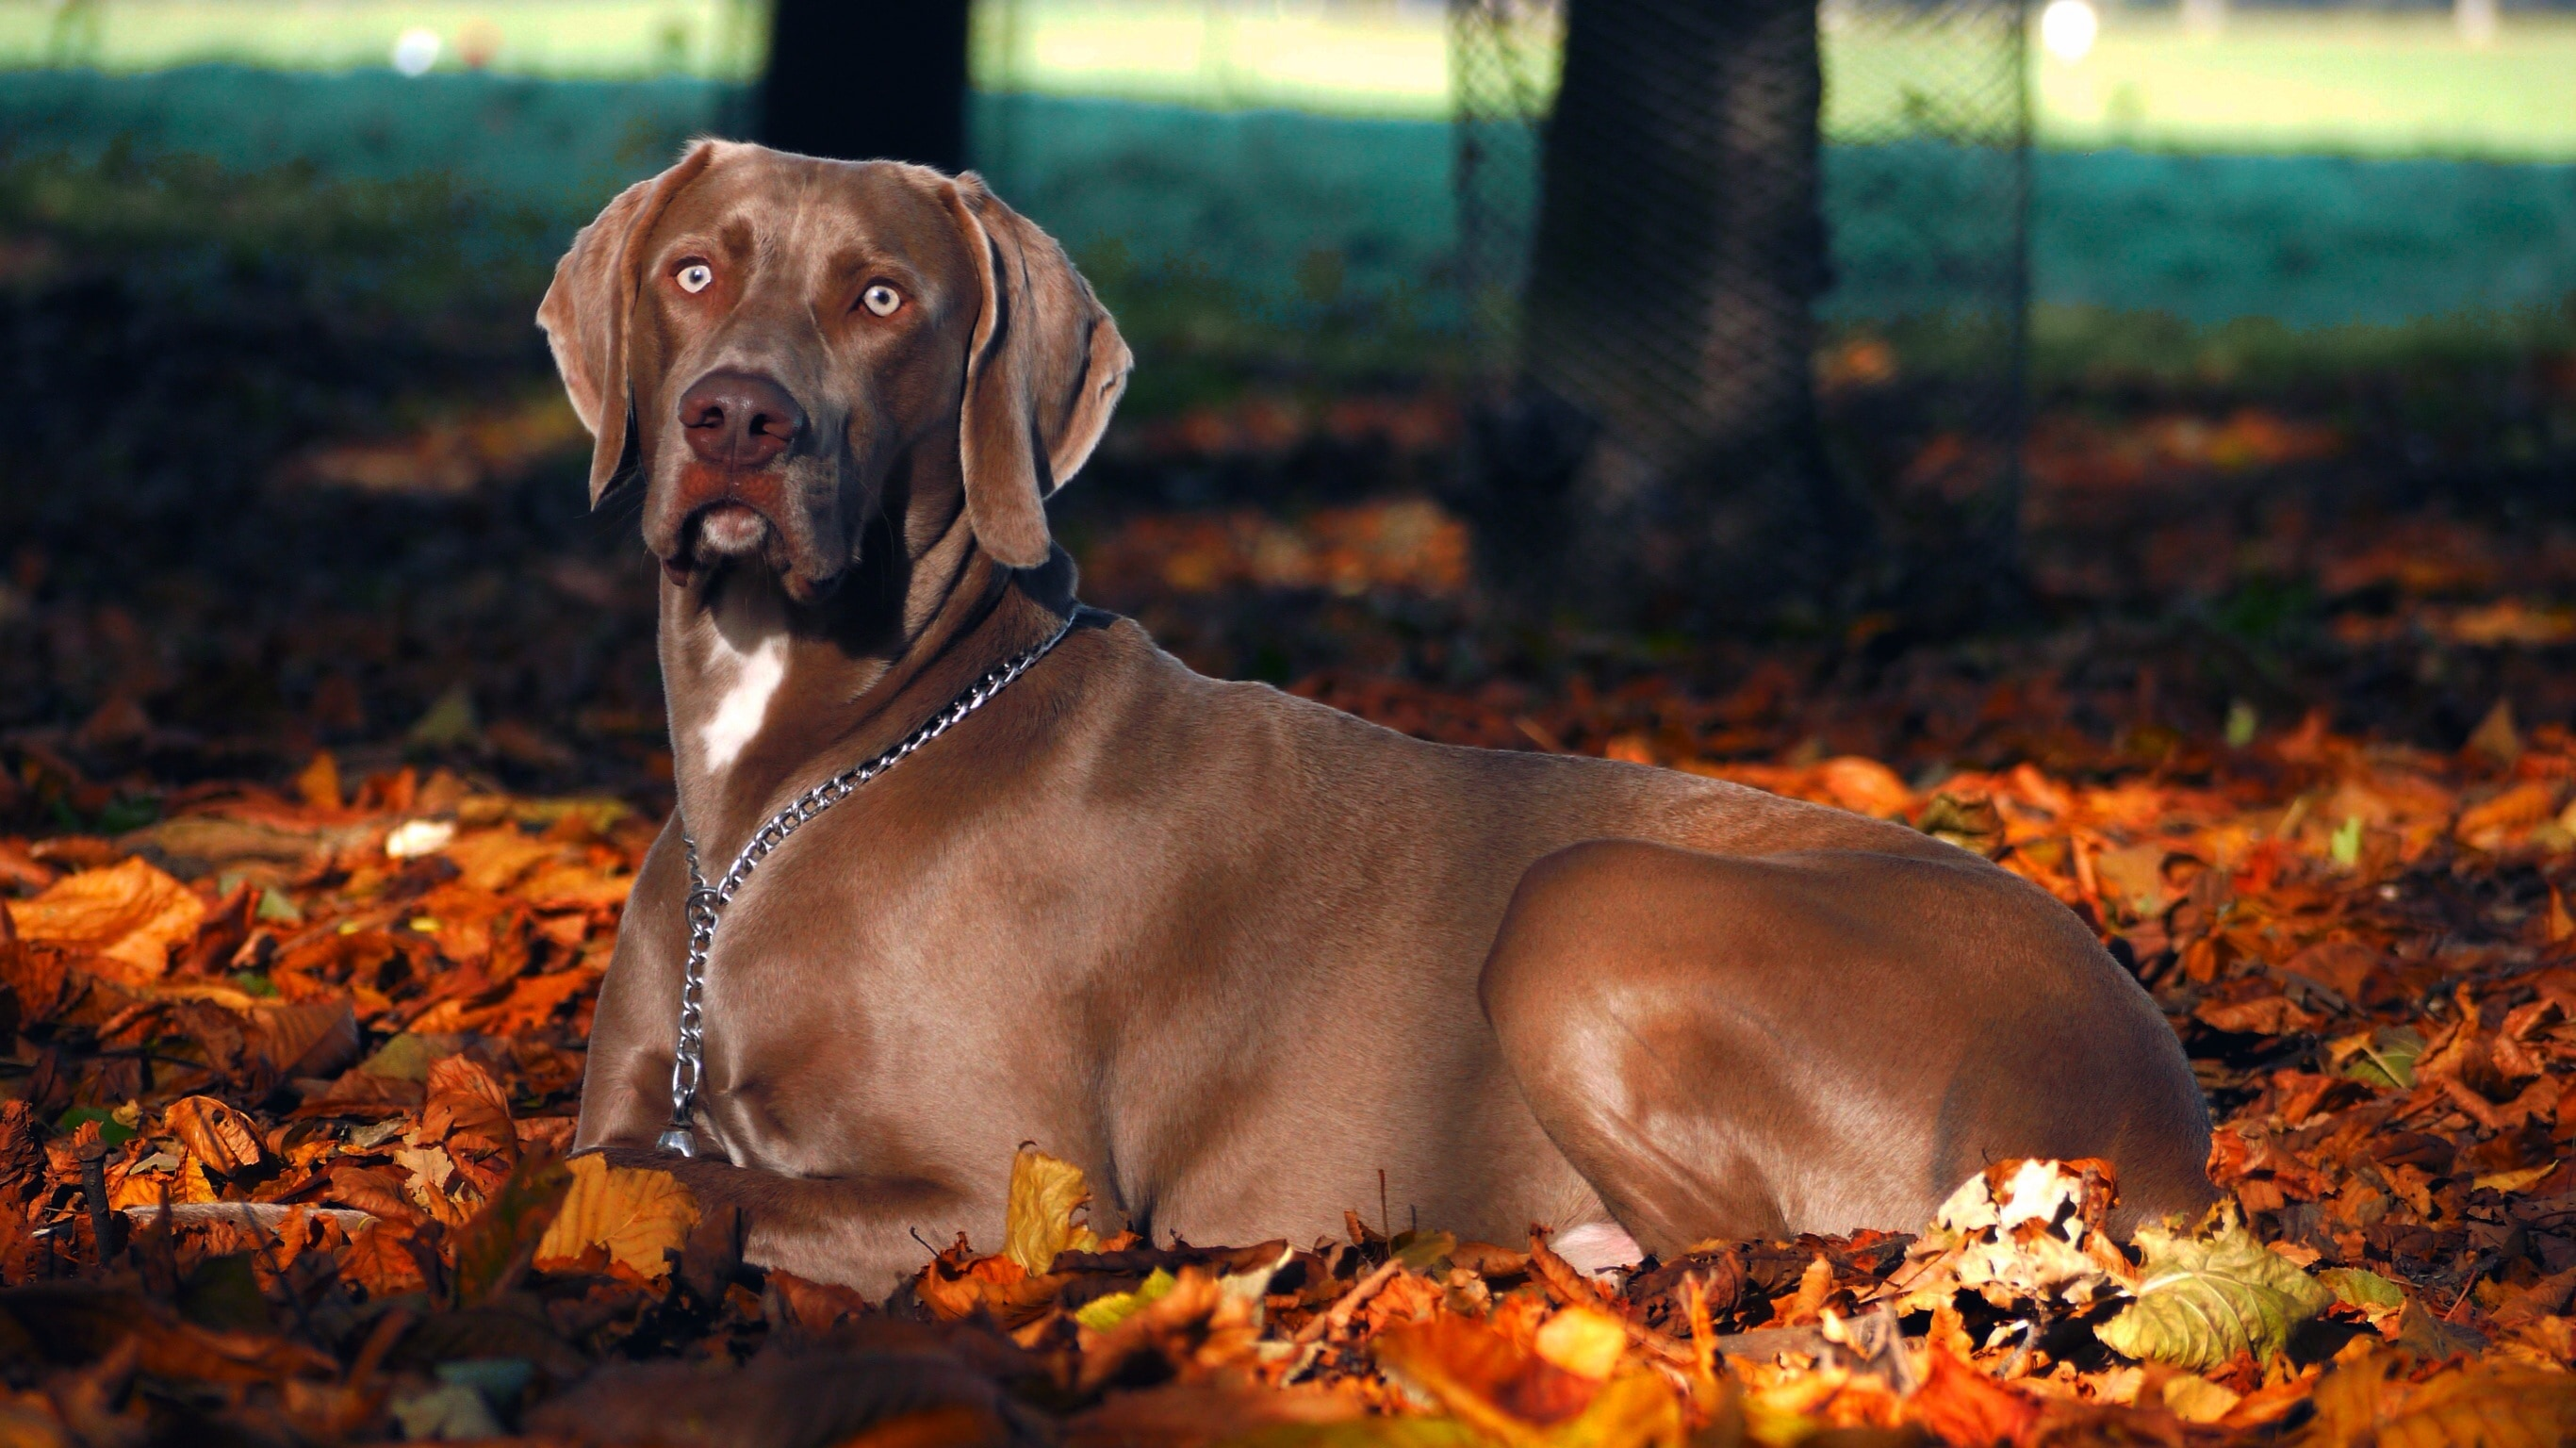 Free Cute Fall Wallpaper Fall Dog Weimaraner Autumn Dog Pets Free Image Peakpx